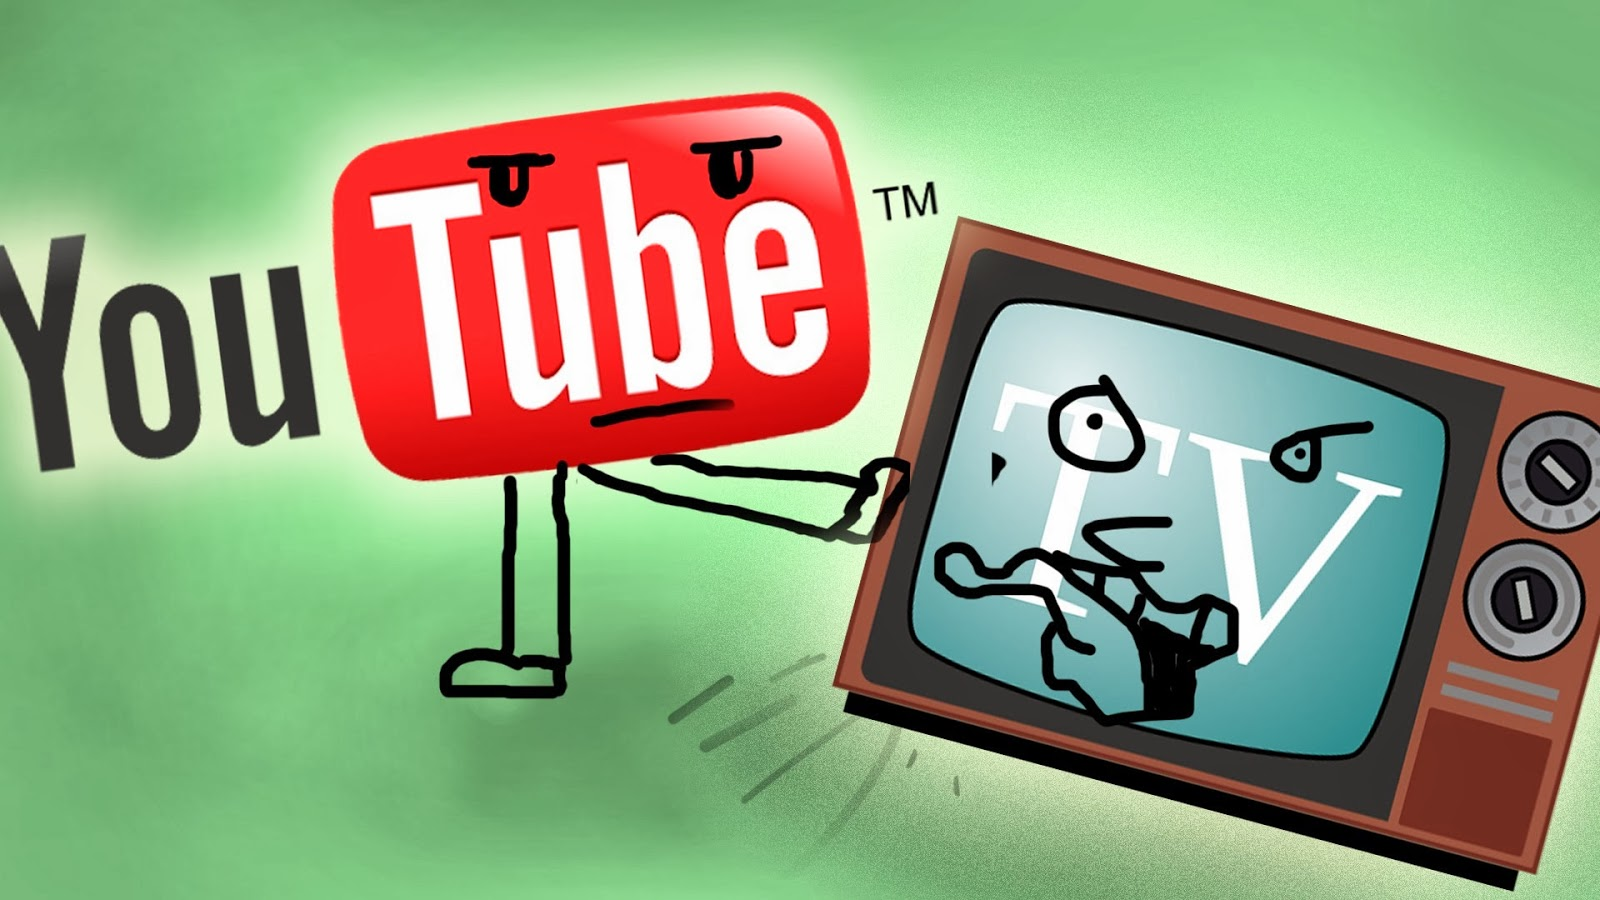 Youtube-Television